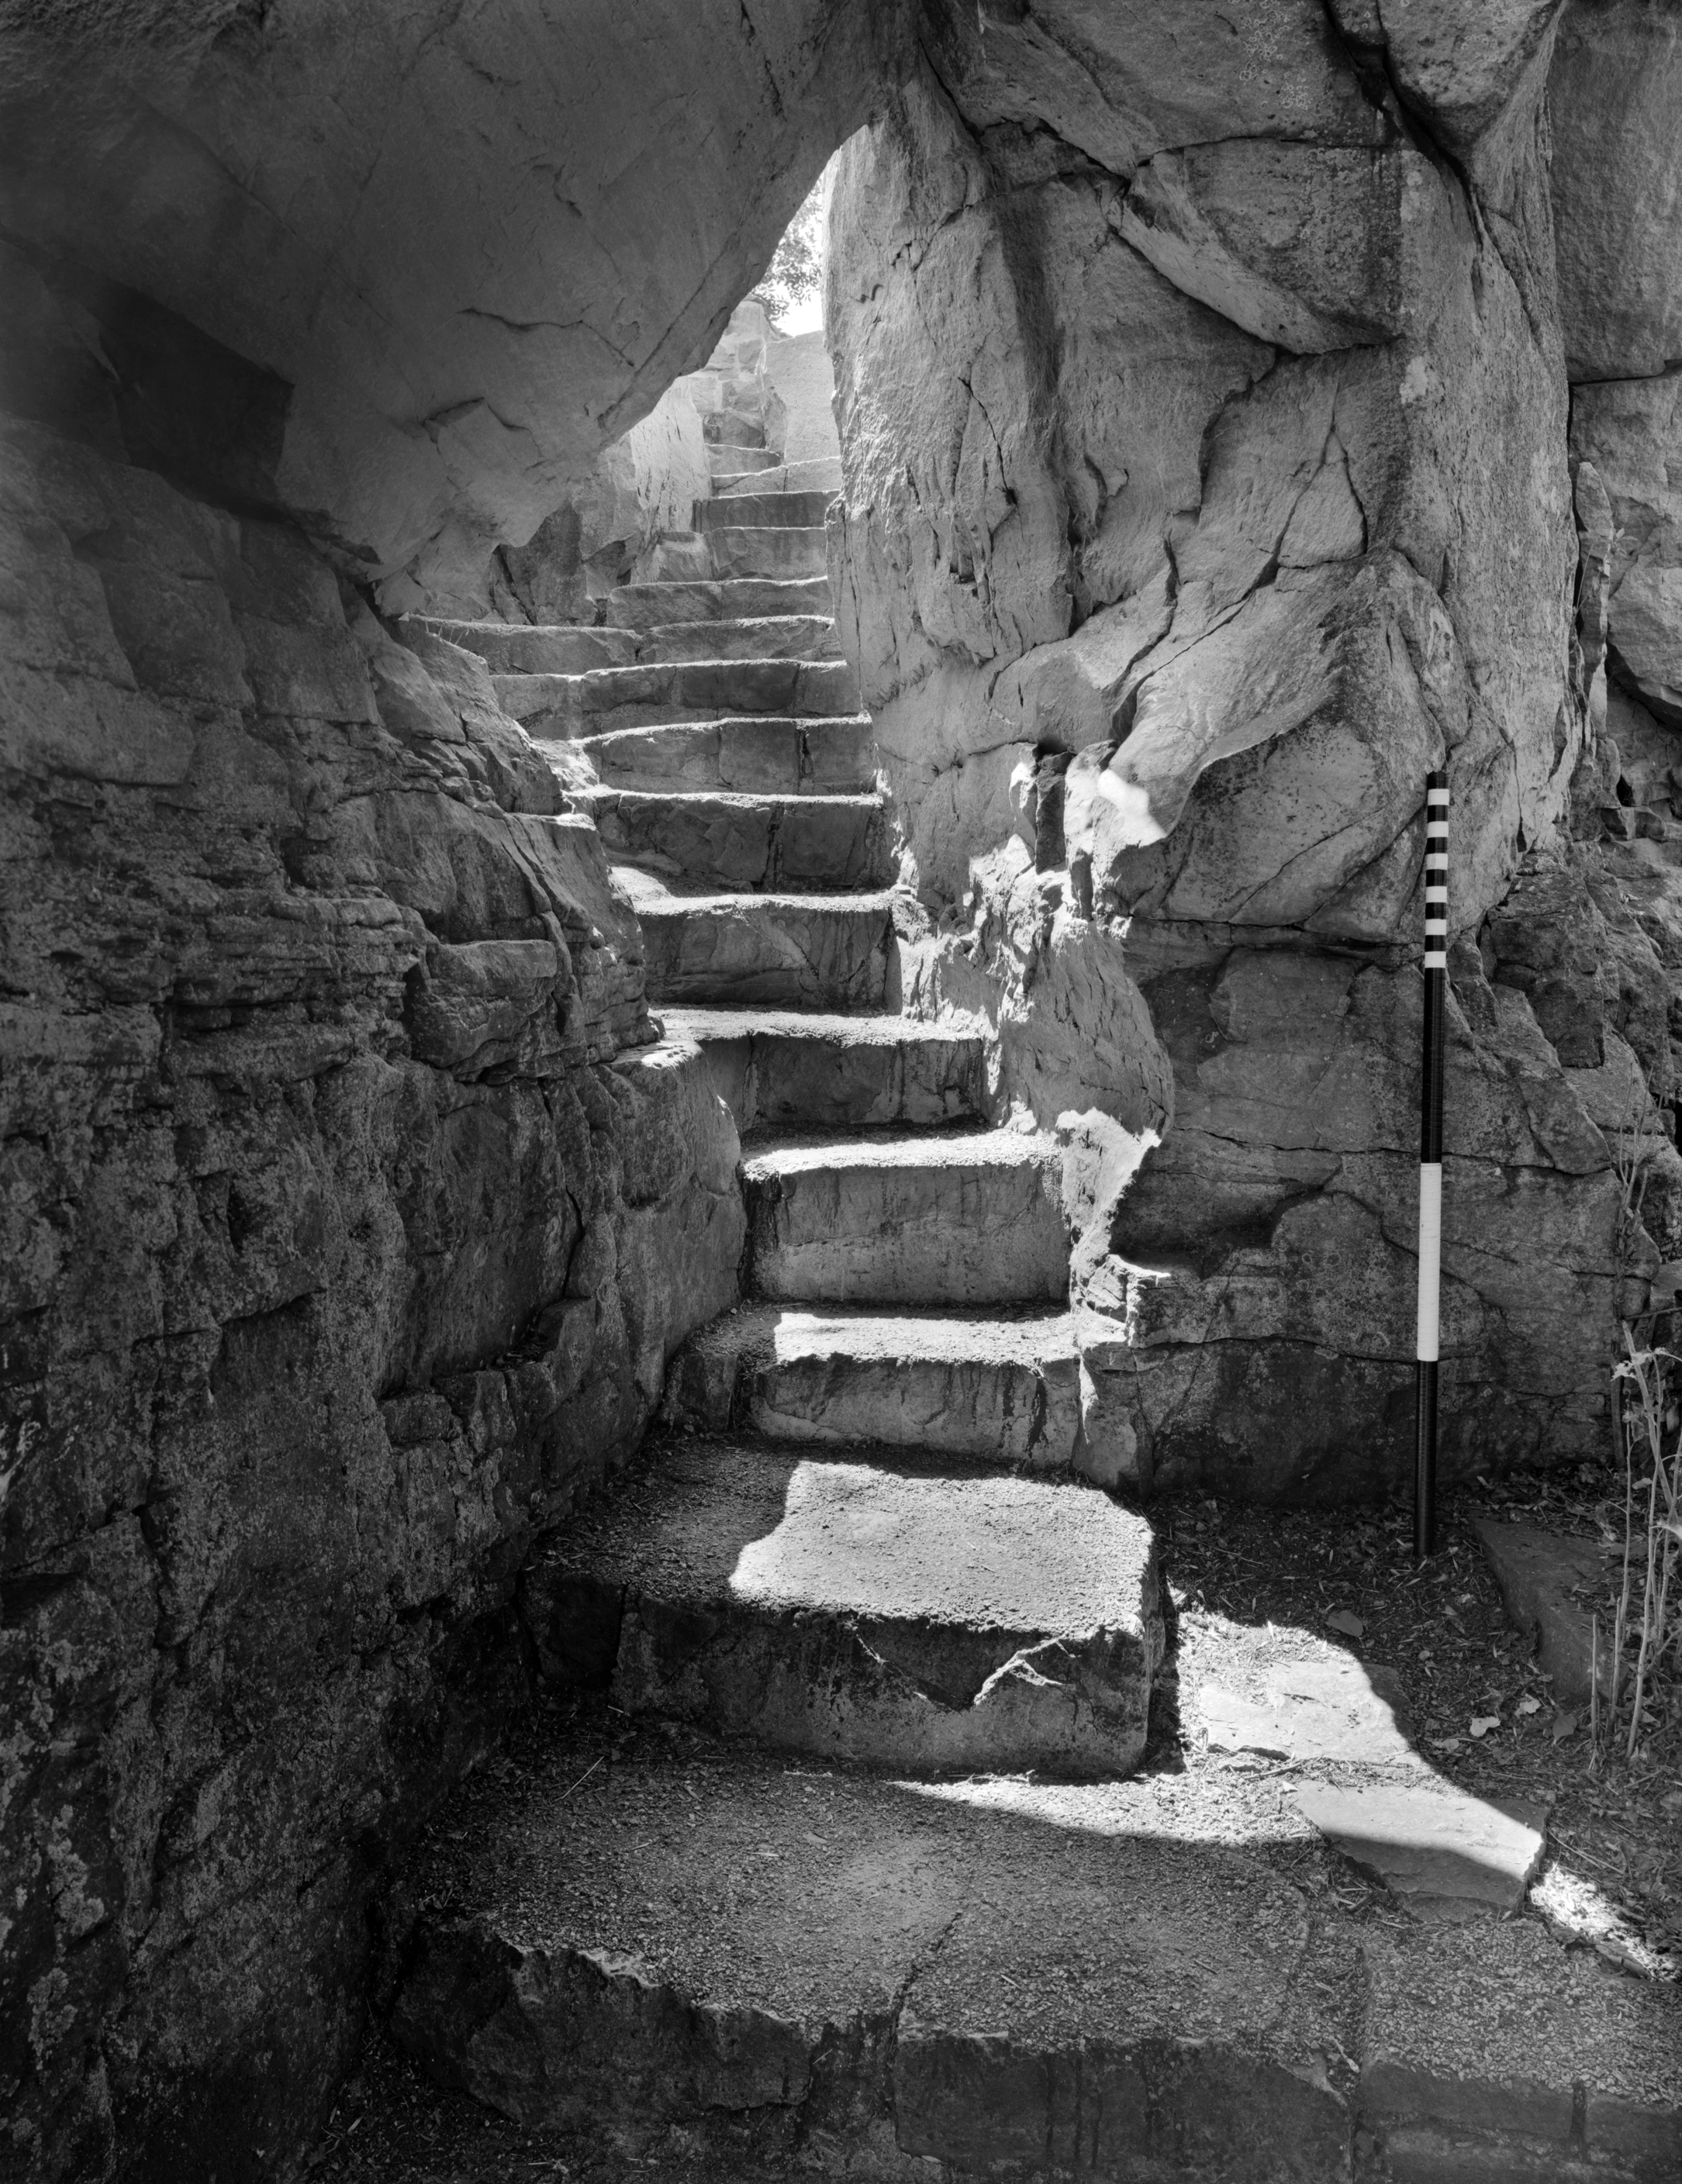 HALS MN-5-02 Pipestone National Monument Sioux Quartzite Steps to Clifftop (Please credit Daniel R. Pratt and the Historic American Landscapes Survey)